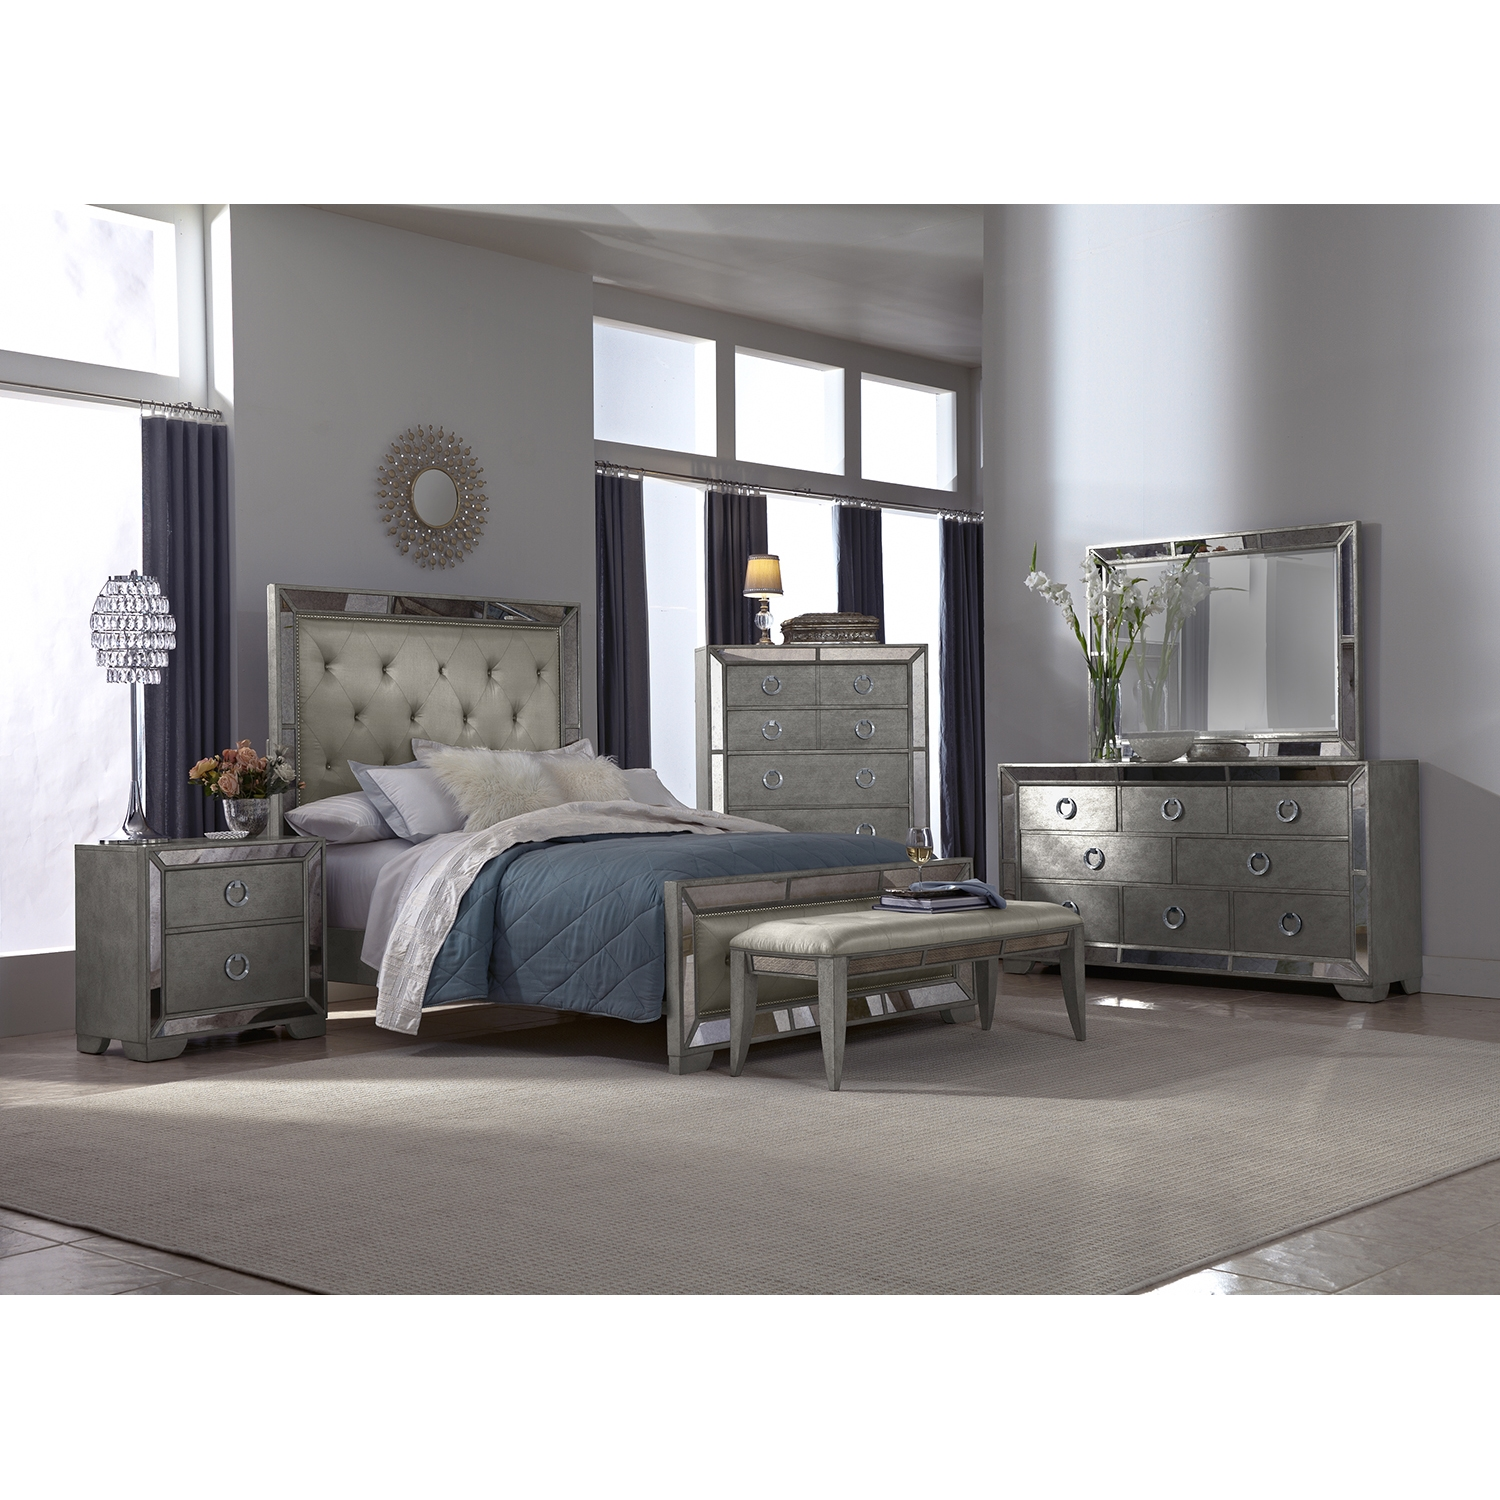 silver bedroom furniture sets photo - 5